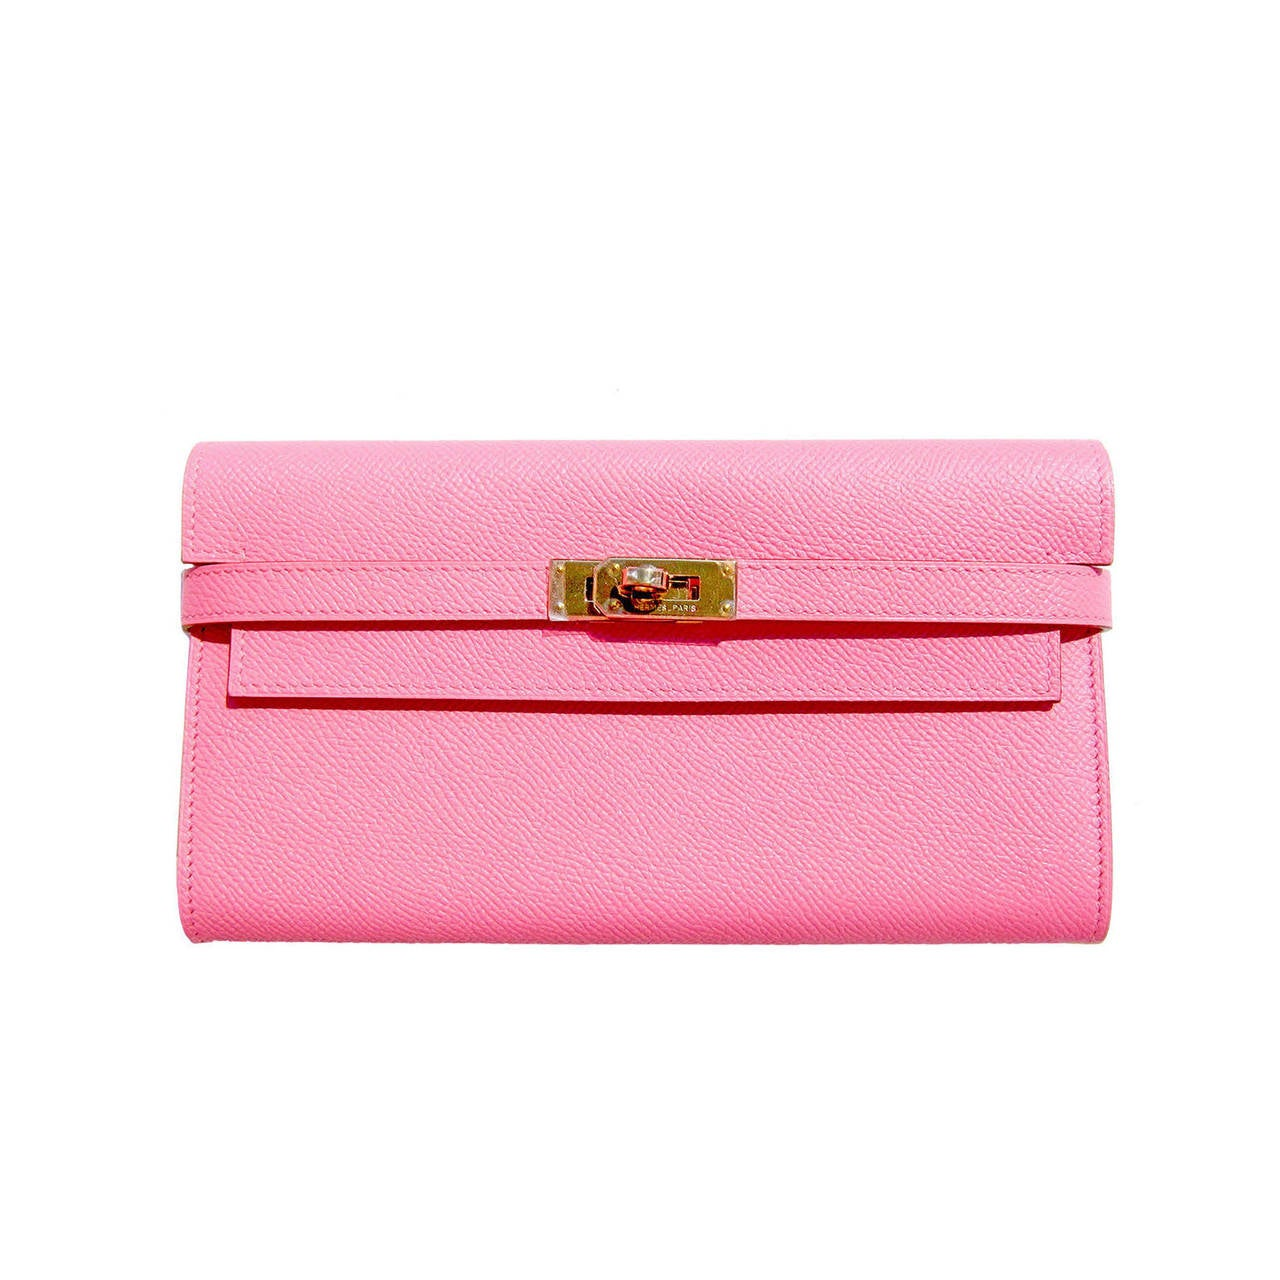 best affordable purses - Chicjoy Wallets and Small Accessories - New York, NY 10003 - 1stdibs